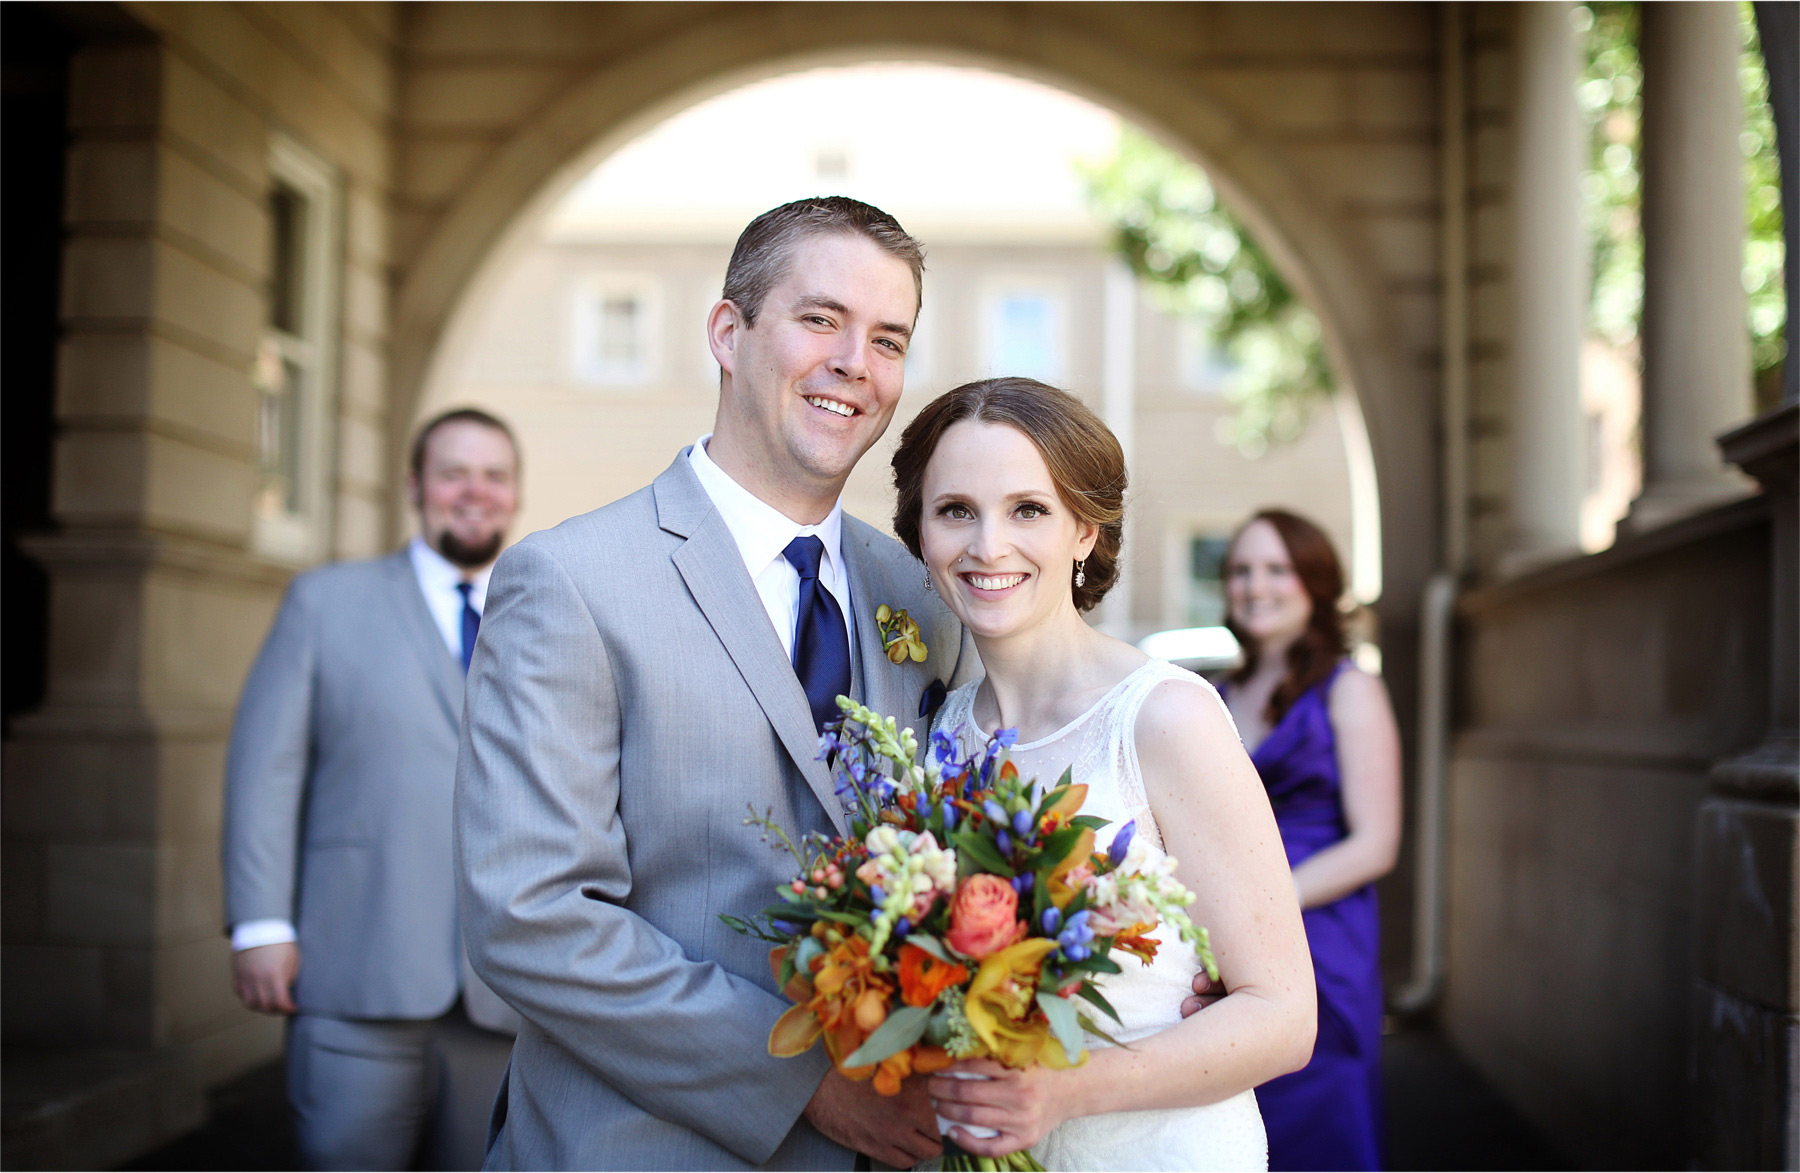 13-Minneapolis-Minnesota-Wedding-Photographer-by-Andrew-Vick-Photography-Summer-Semple-Mansion-Bride-Groom-Bridesmaid-Groomsmen-Bridal-Party-Flowers-Stephanie-and-Robert.jpg